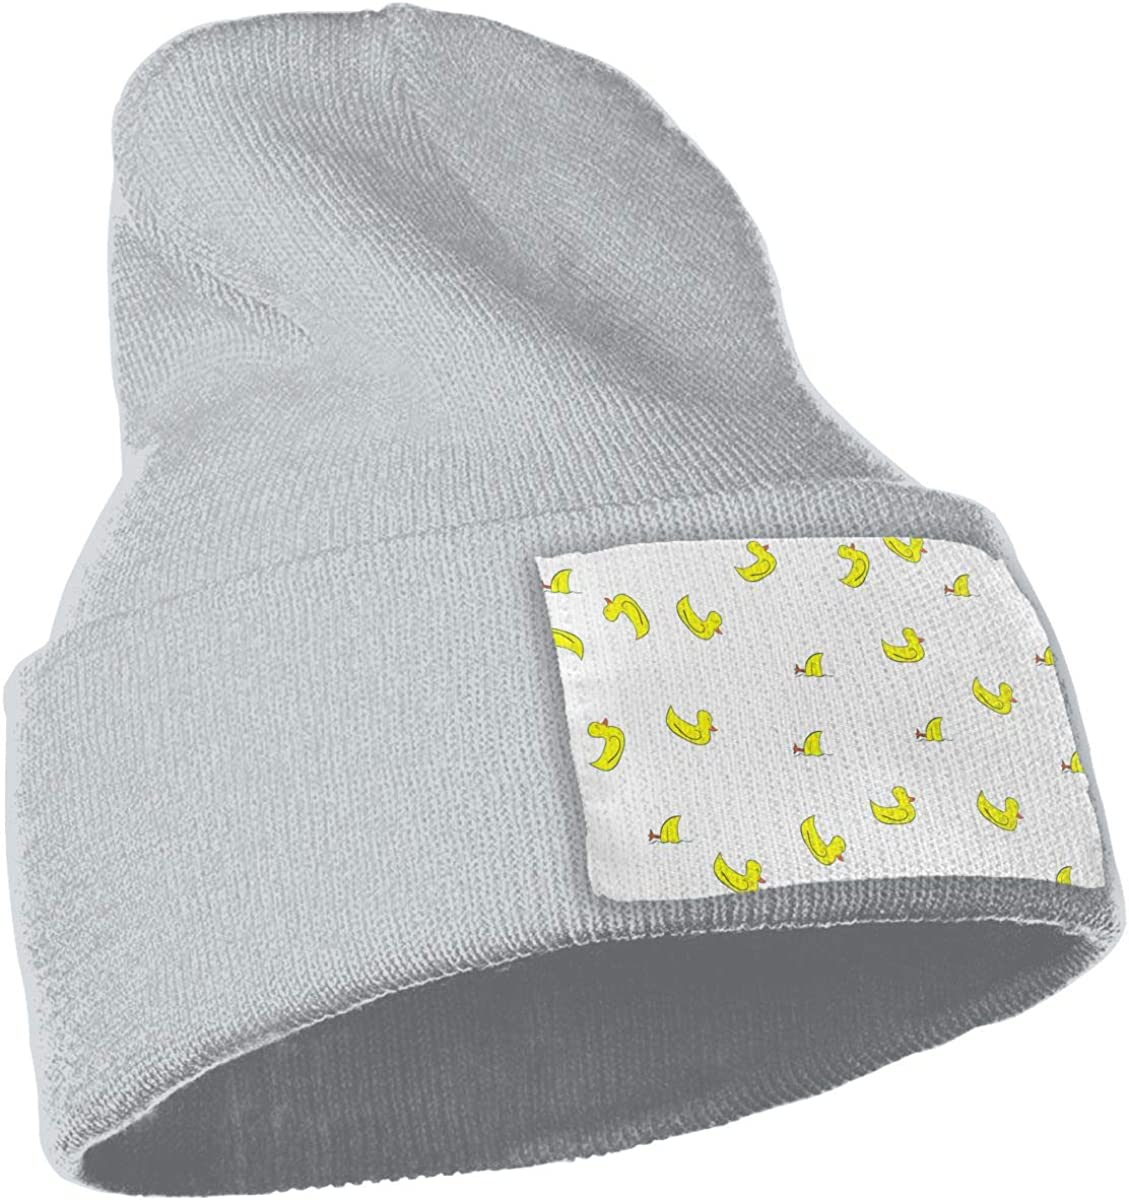 Yellow Duck Hat for Men and Women Winter Warm Hats Knit Slouchy Thick Skull Cap Black